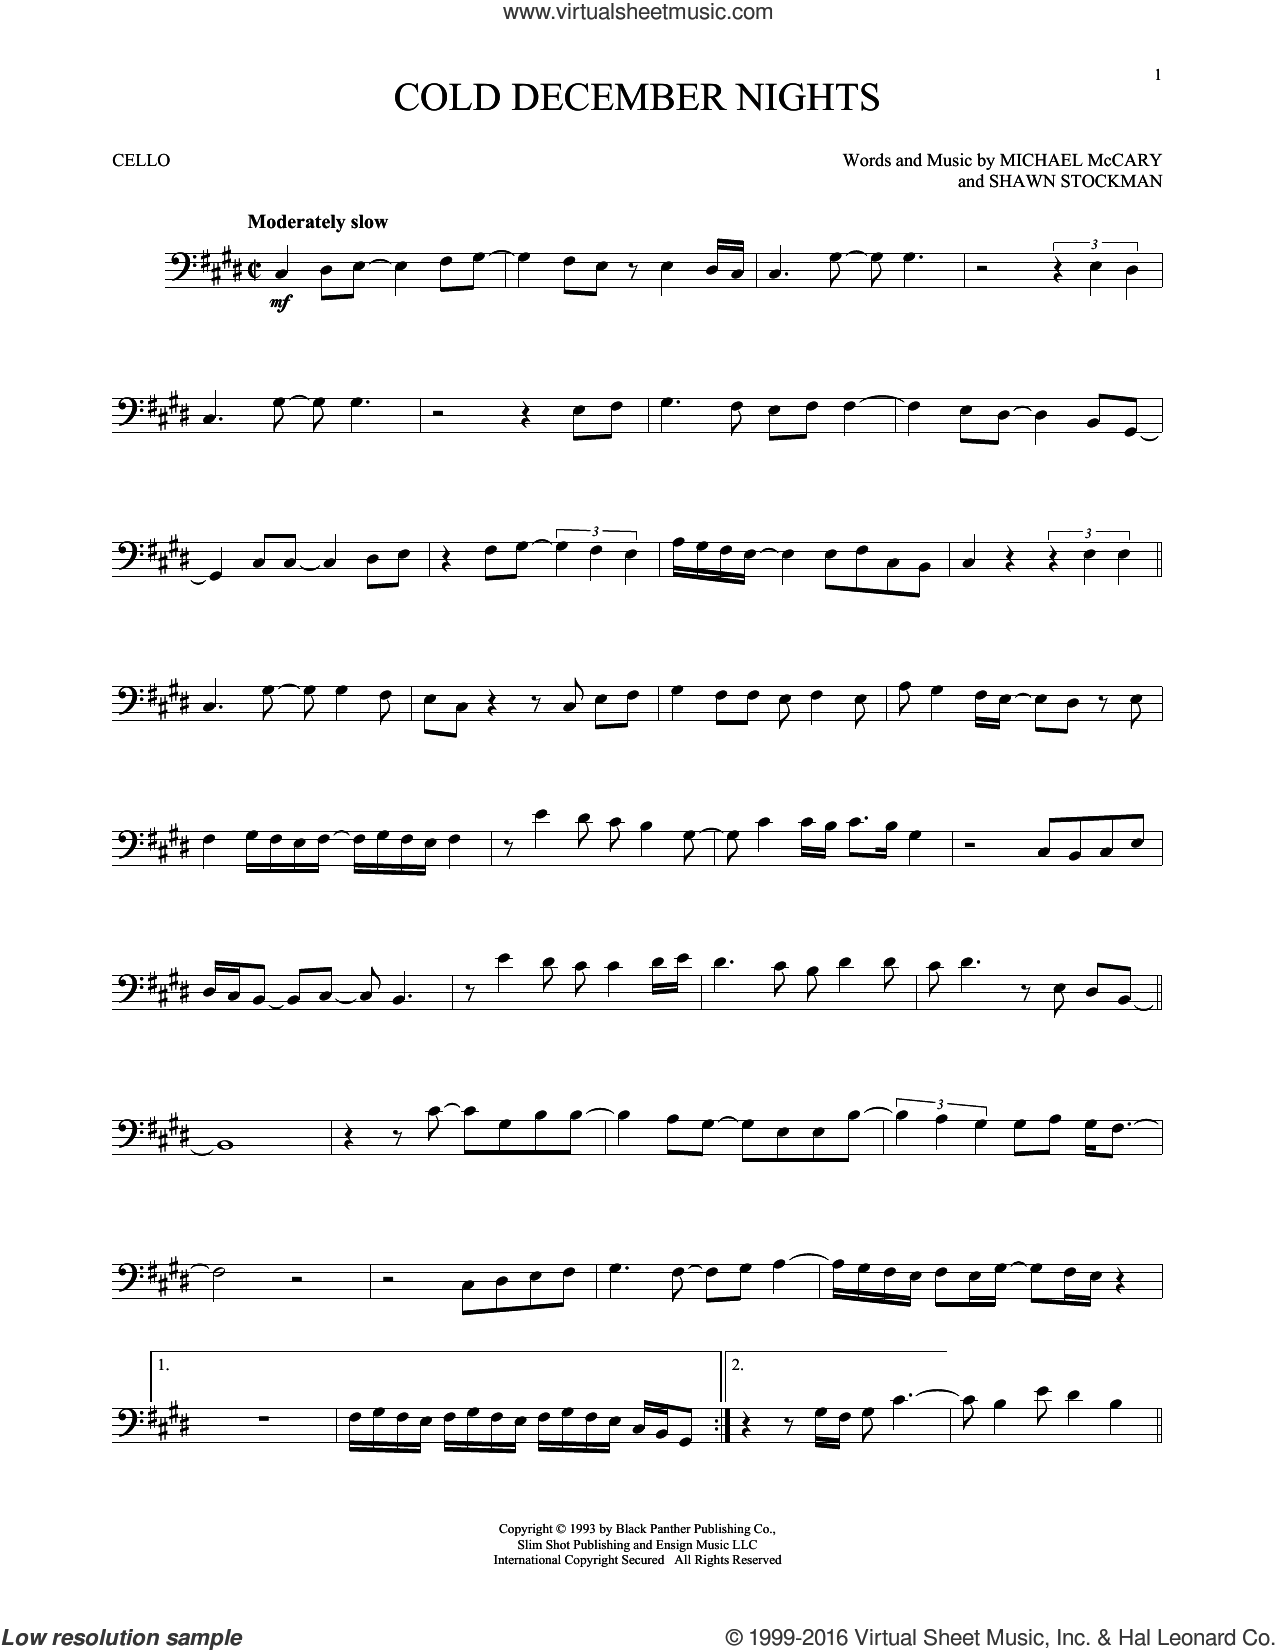 Cold December Nights sheet music for cello solo by Boyz II Men, Michael Buble, Michael McCary and Shawn Stockman, intermediate skill level